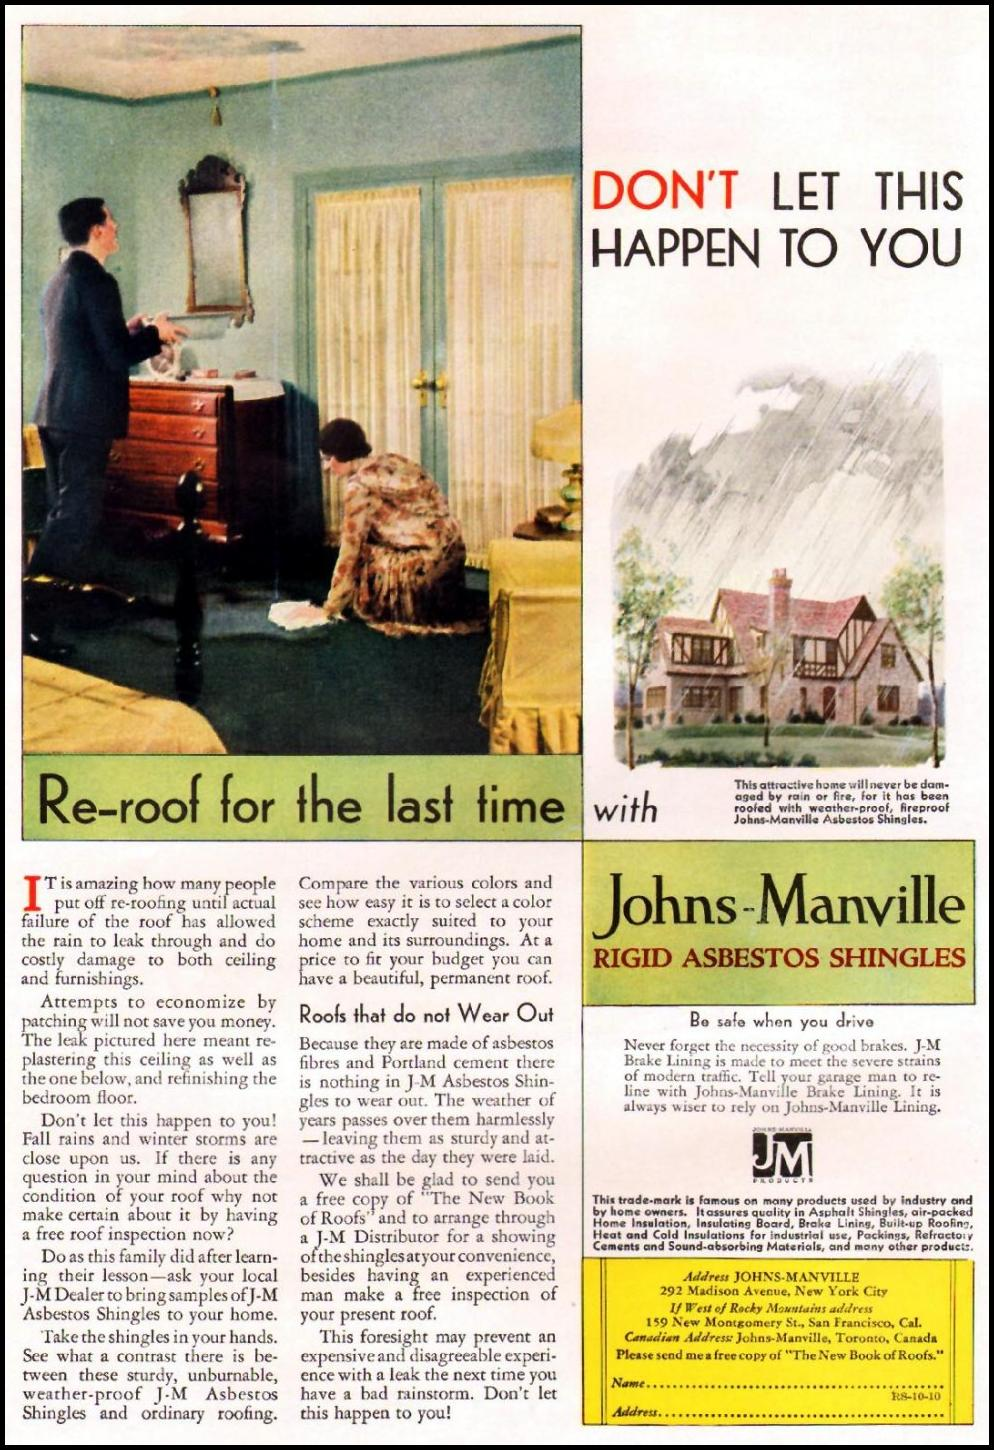 JOHNS-MANVILLE RIGID ASBESTOS SHINGLES